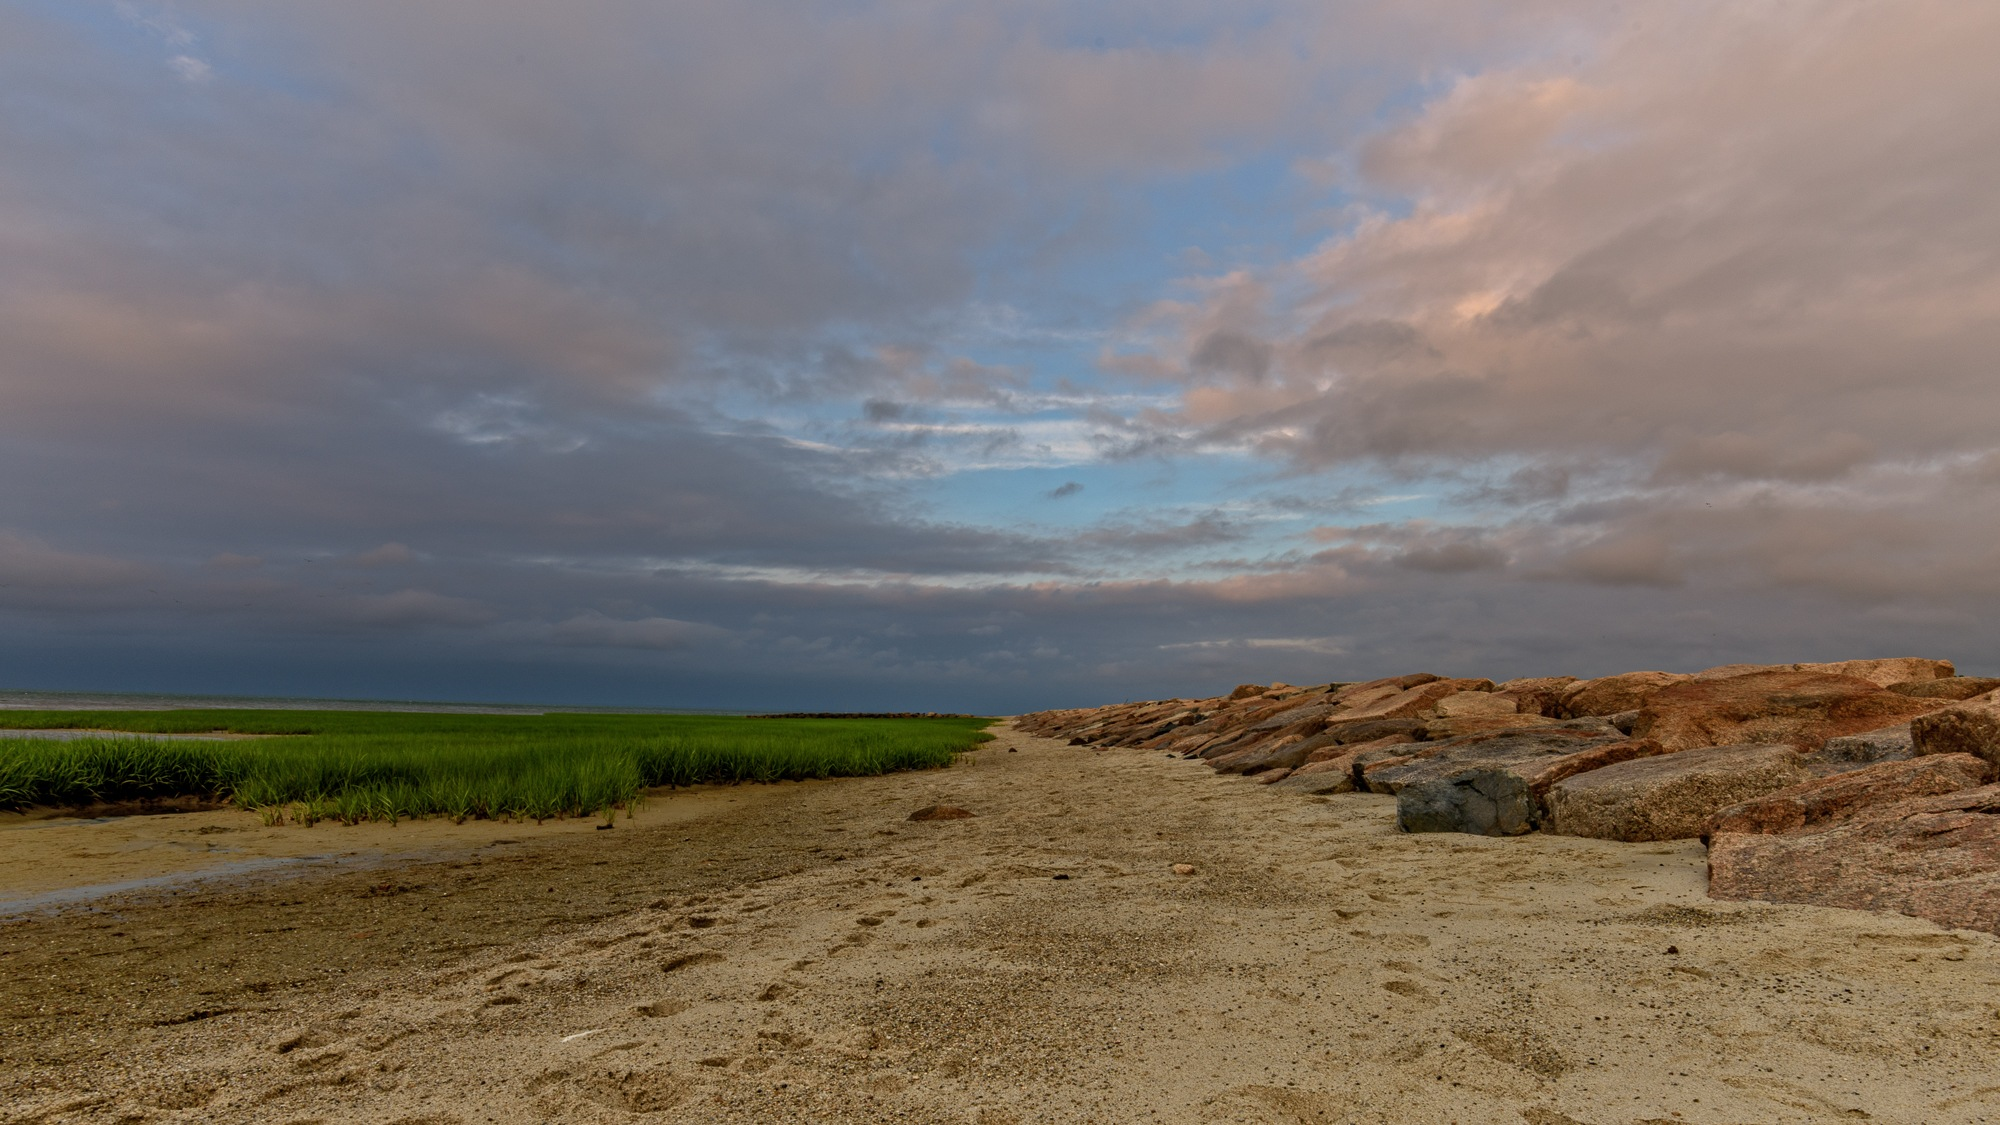 End of a Cloudy Day at Paines Creek Beach  by Steve Director